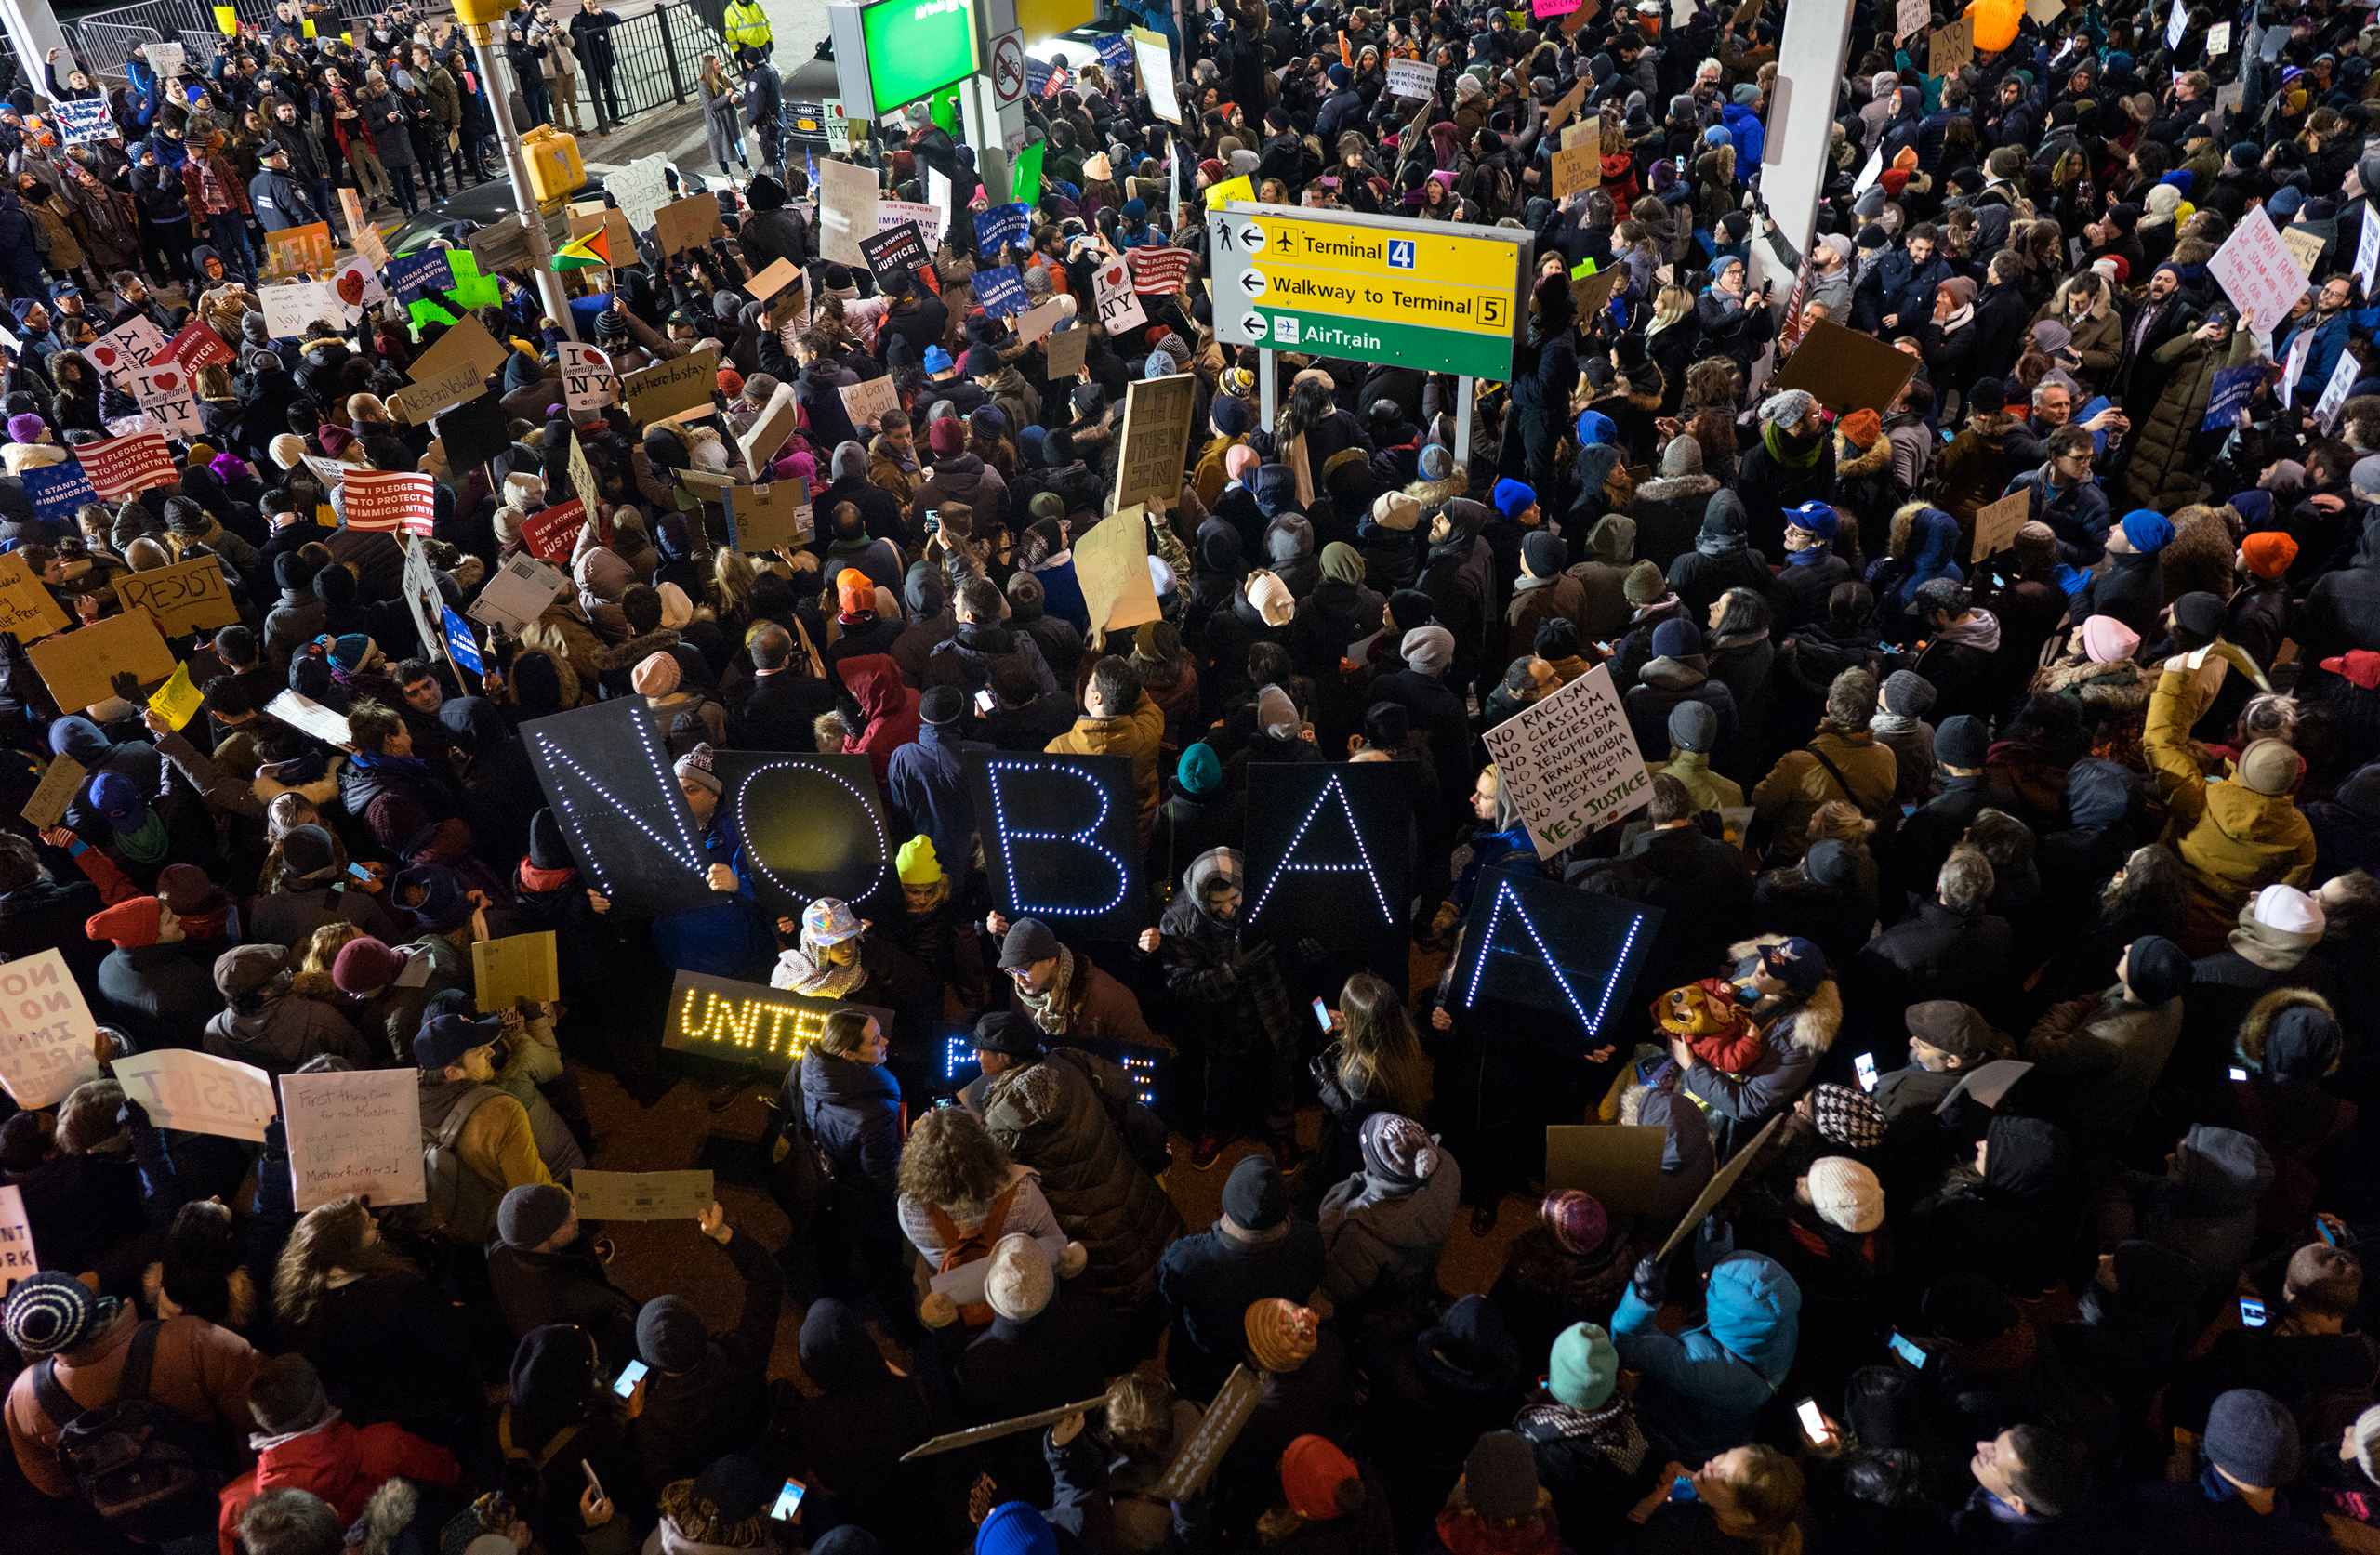 Protesters assemble at John F. Kennedy International Airport in New York on Jan. 28, 201.